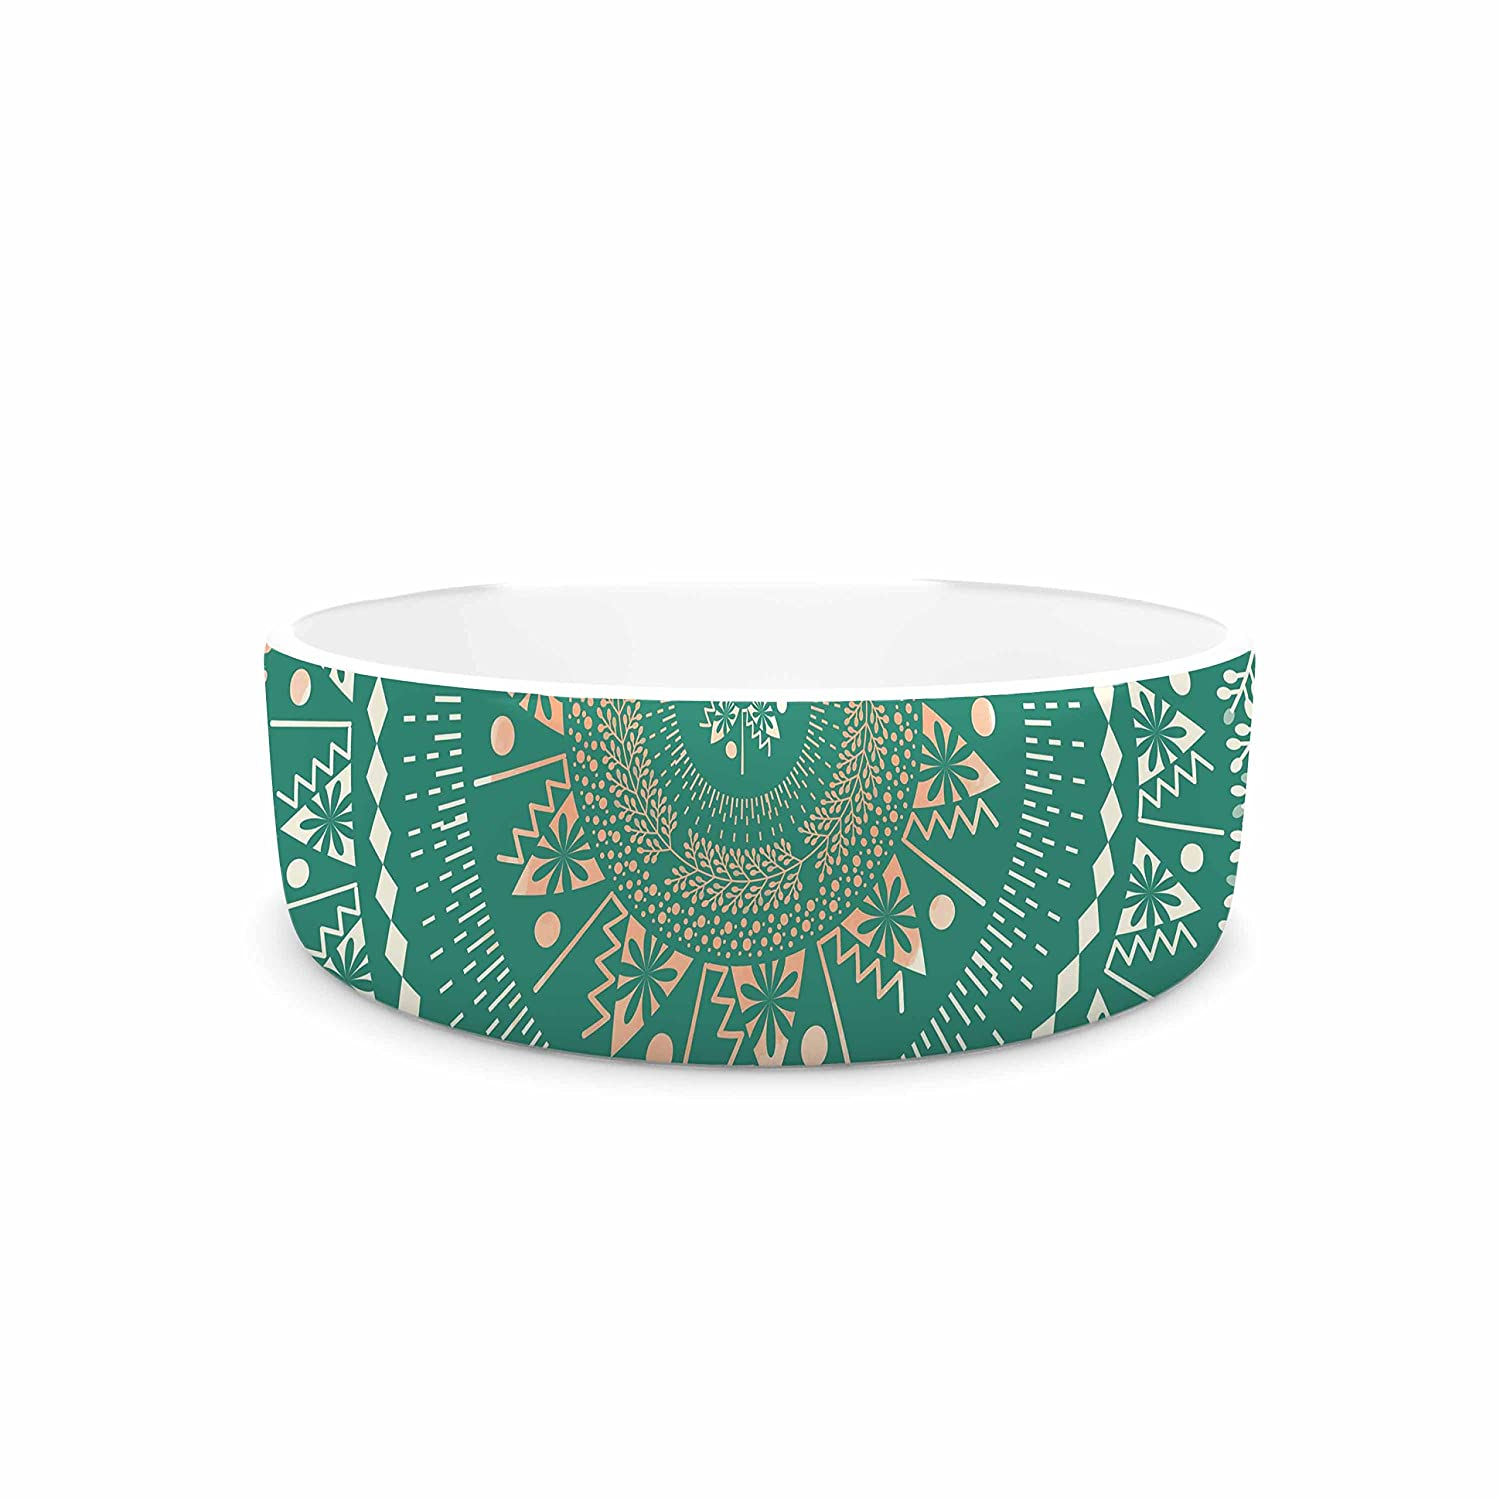 KESS InHouse Famenxt Mint Medallion  Mint Pattern Pet Bowl, 7